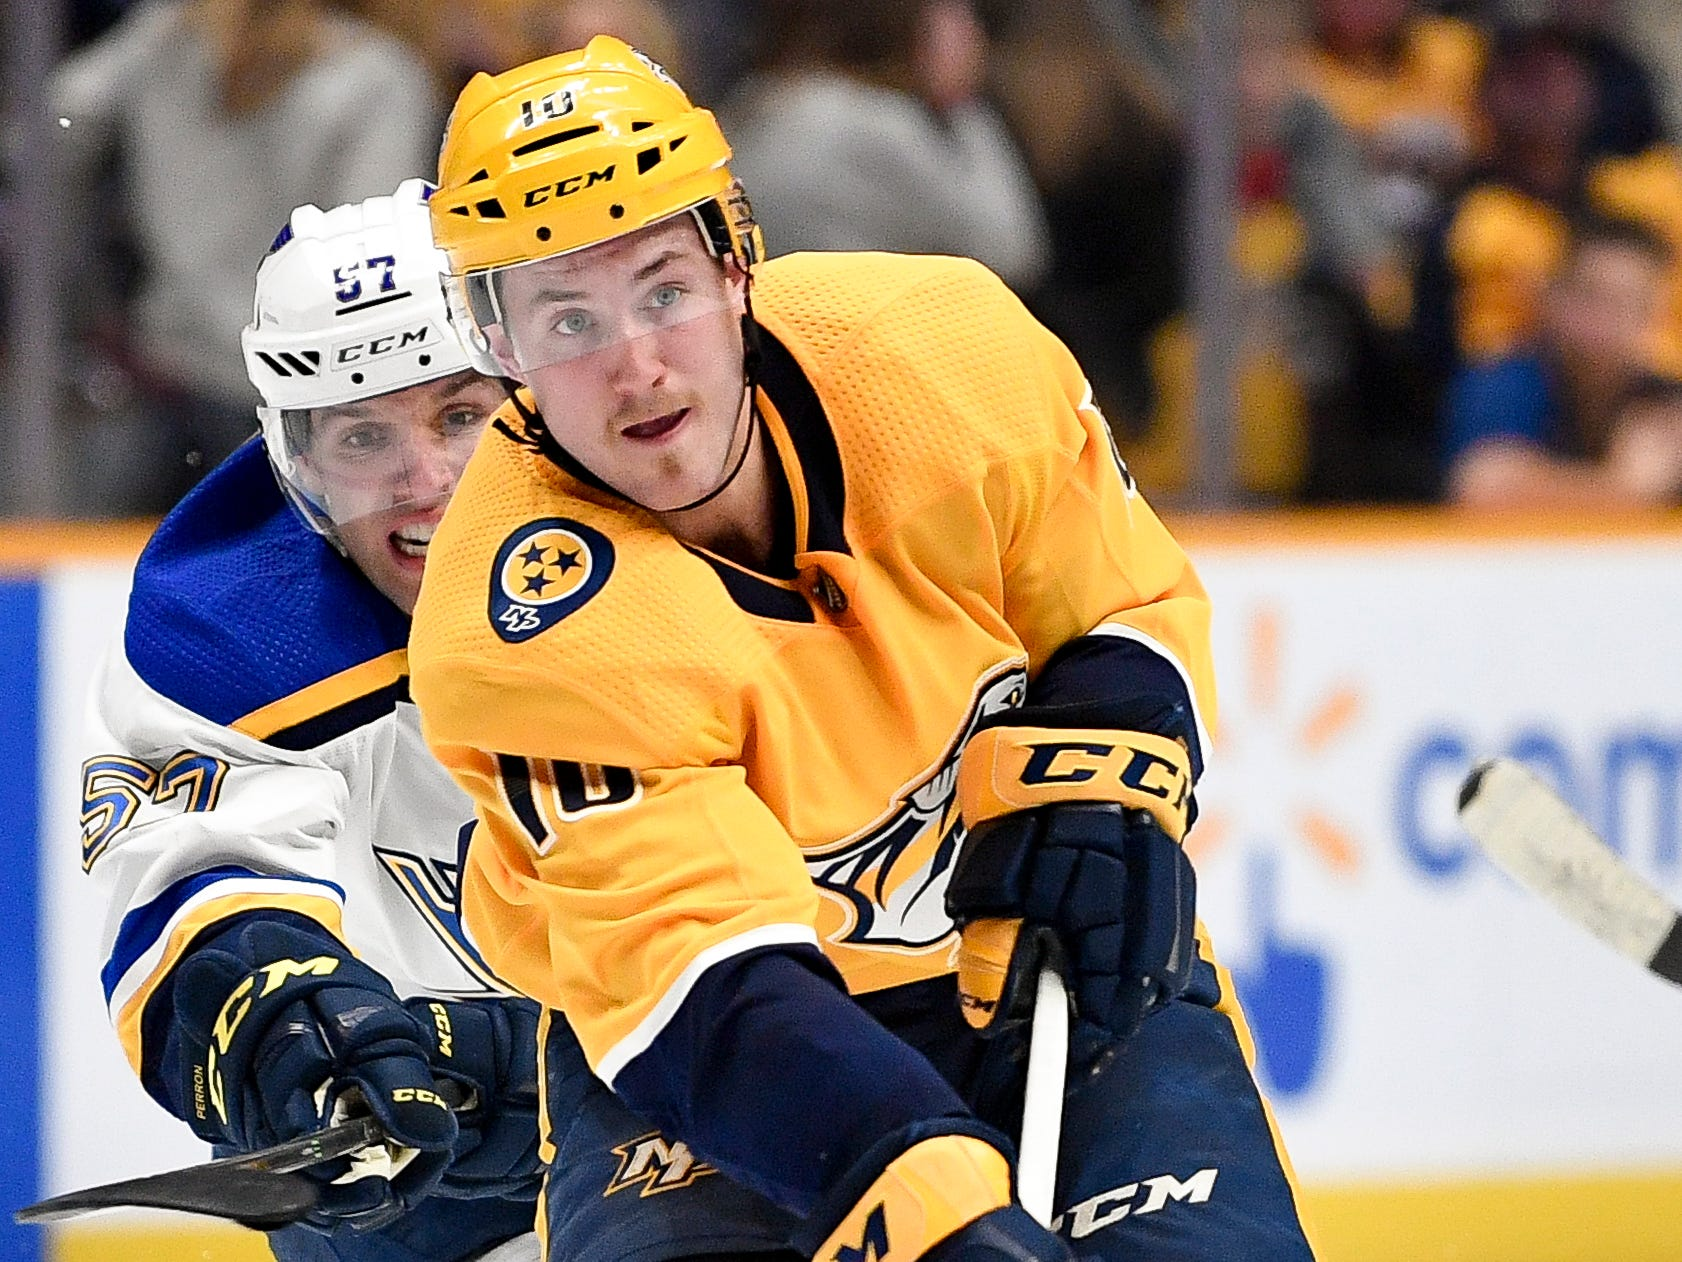 Nashville Predators center Colton Sissons (10) skates past St. Louis Blues left wing David Perron (57) during the third period at Bridgestone Arena in Nashville, Tenn., Wednesday, Nov. 21, 2018.